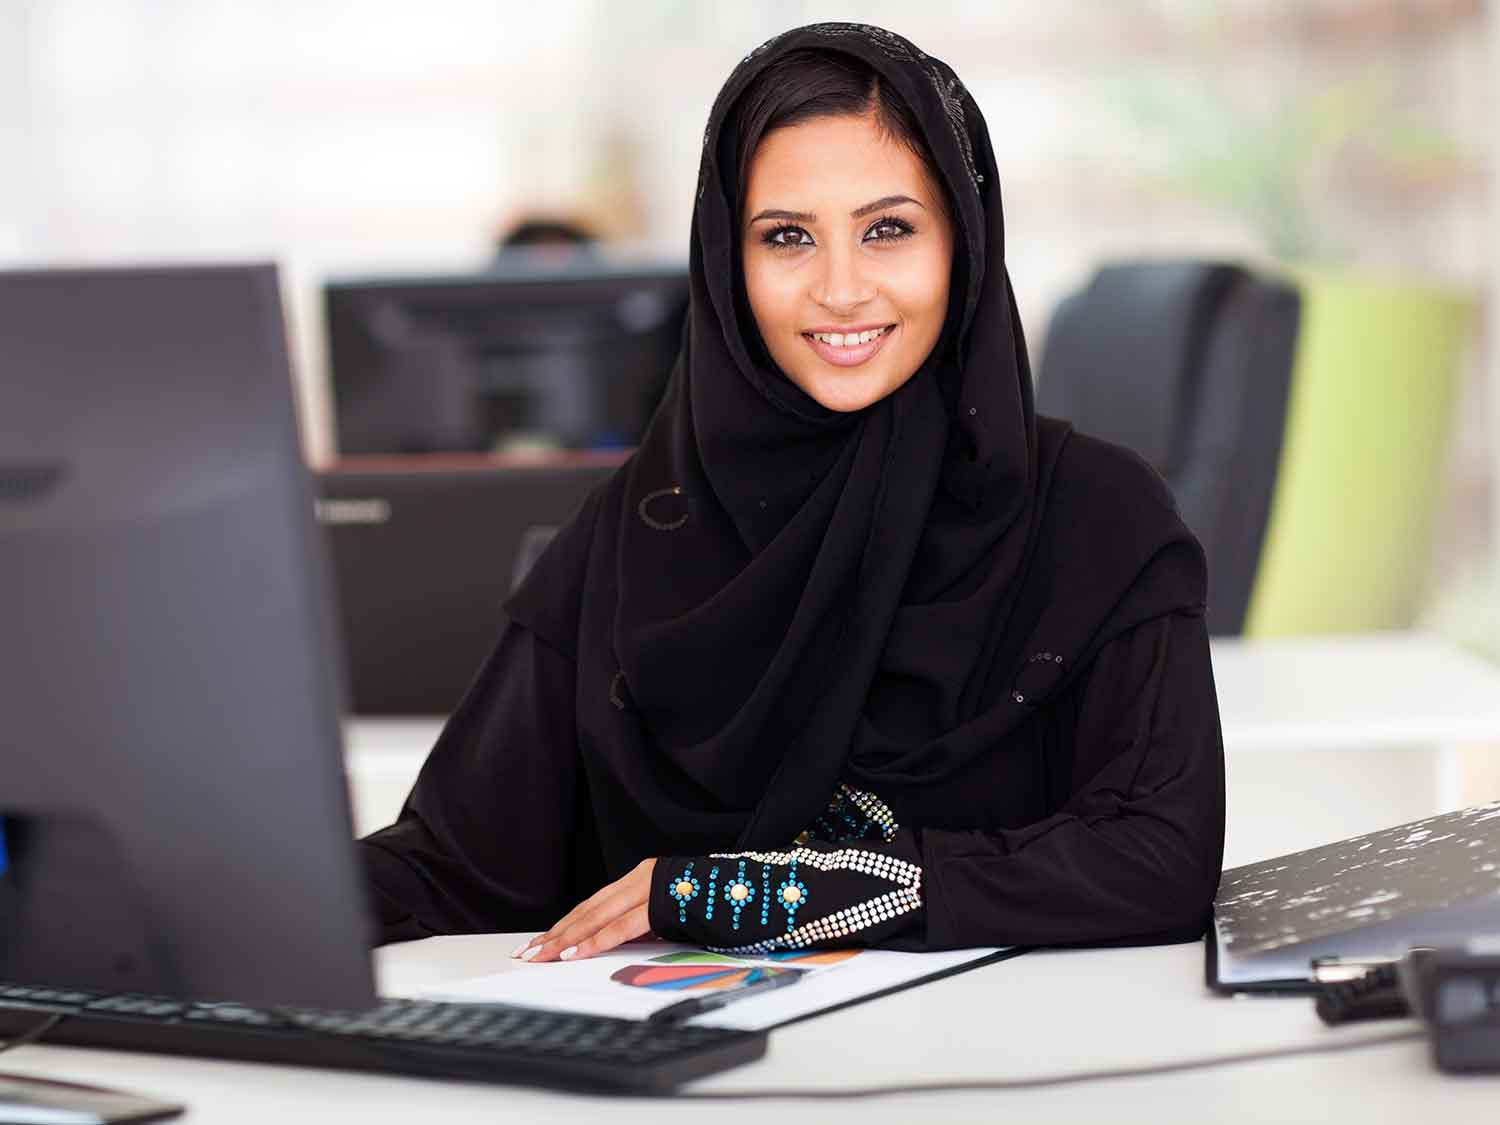 14% of all companies in the Middle East are founded by women: how can we encourage female entrepreneurship in the region?